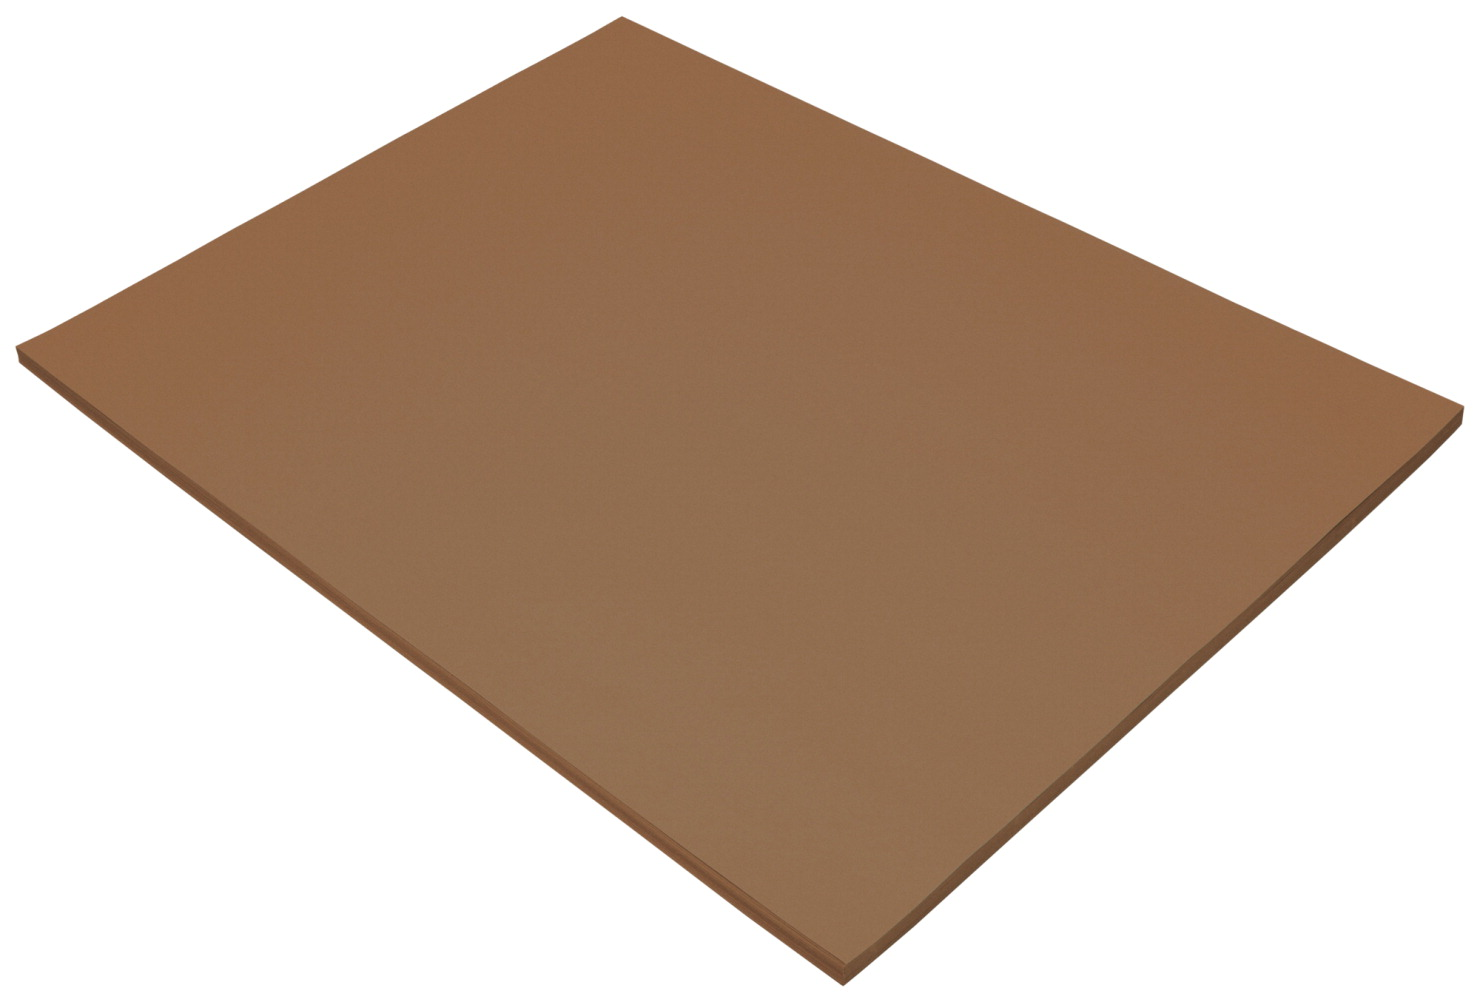 Tru-Ray Sulphite Construction Paper, 18 x 24 Inches, Warm Brown, 50 Sheets